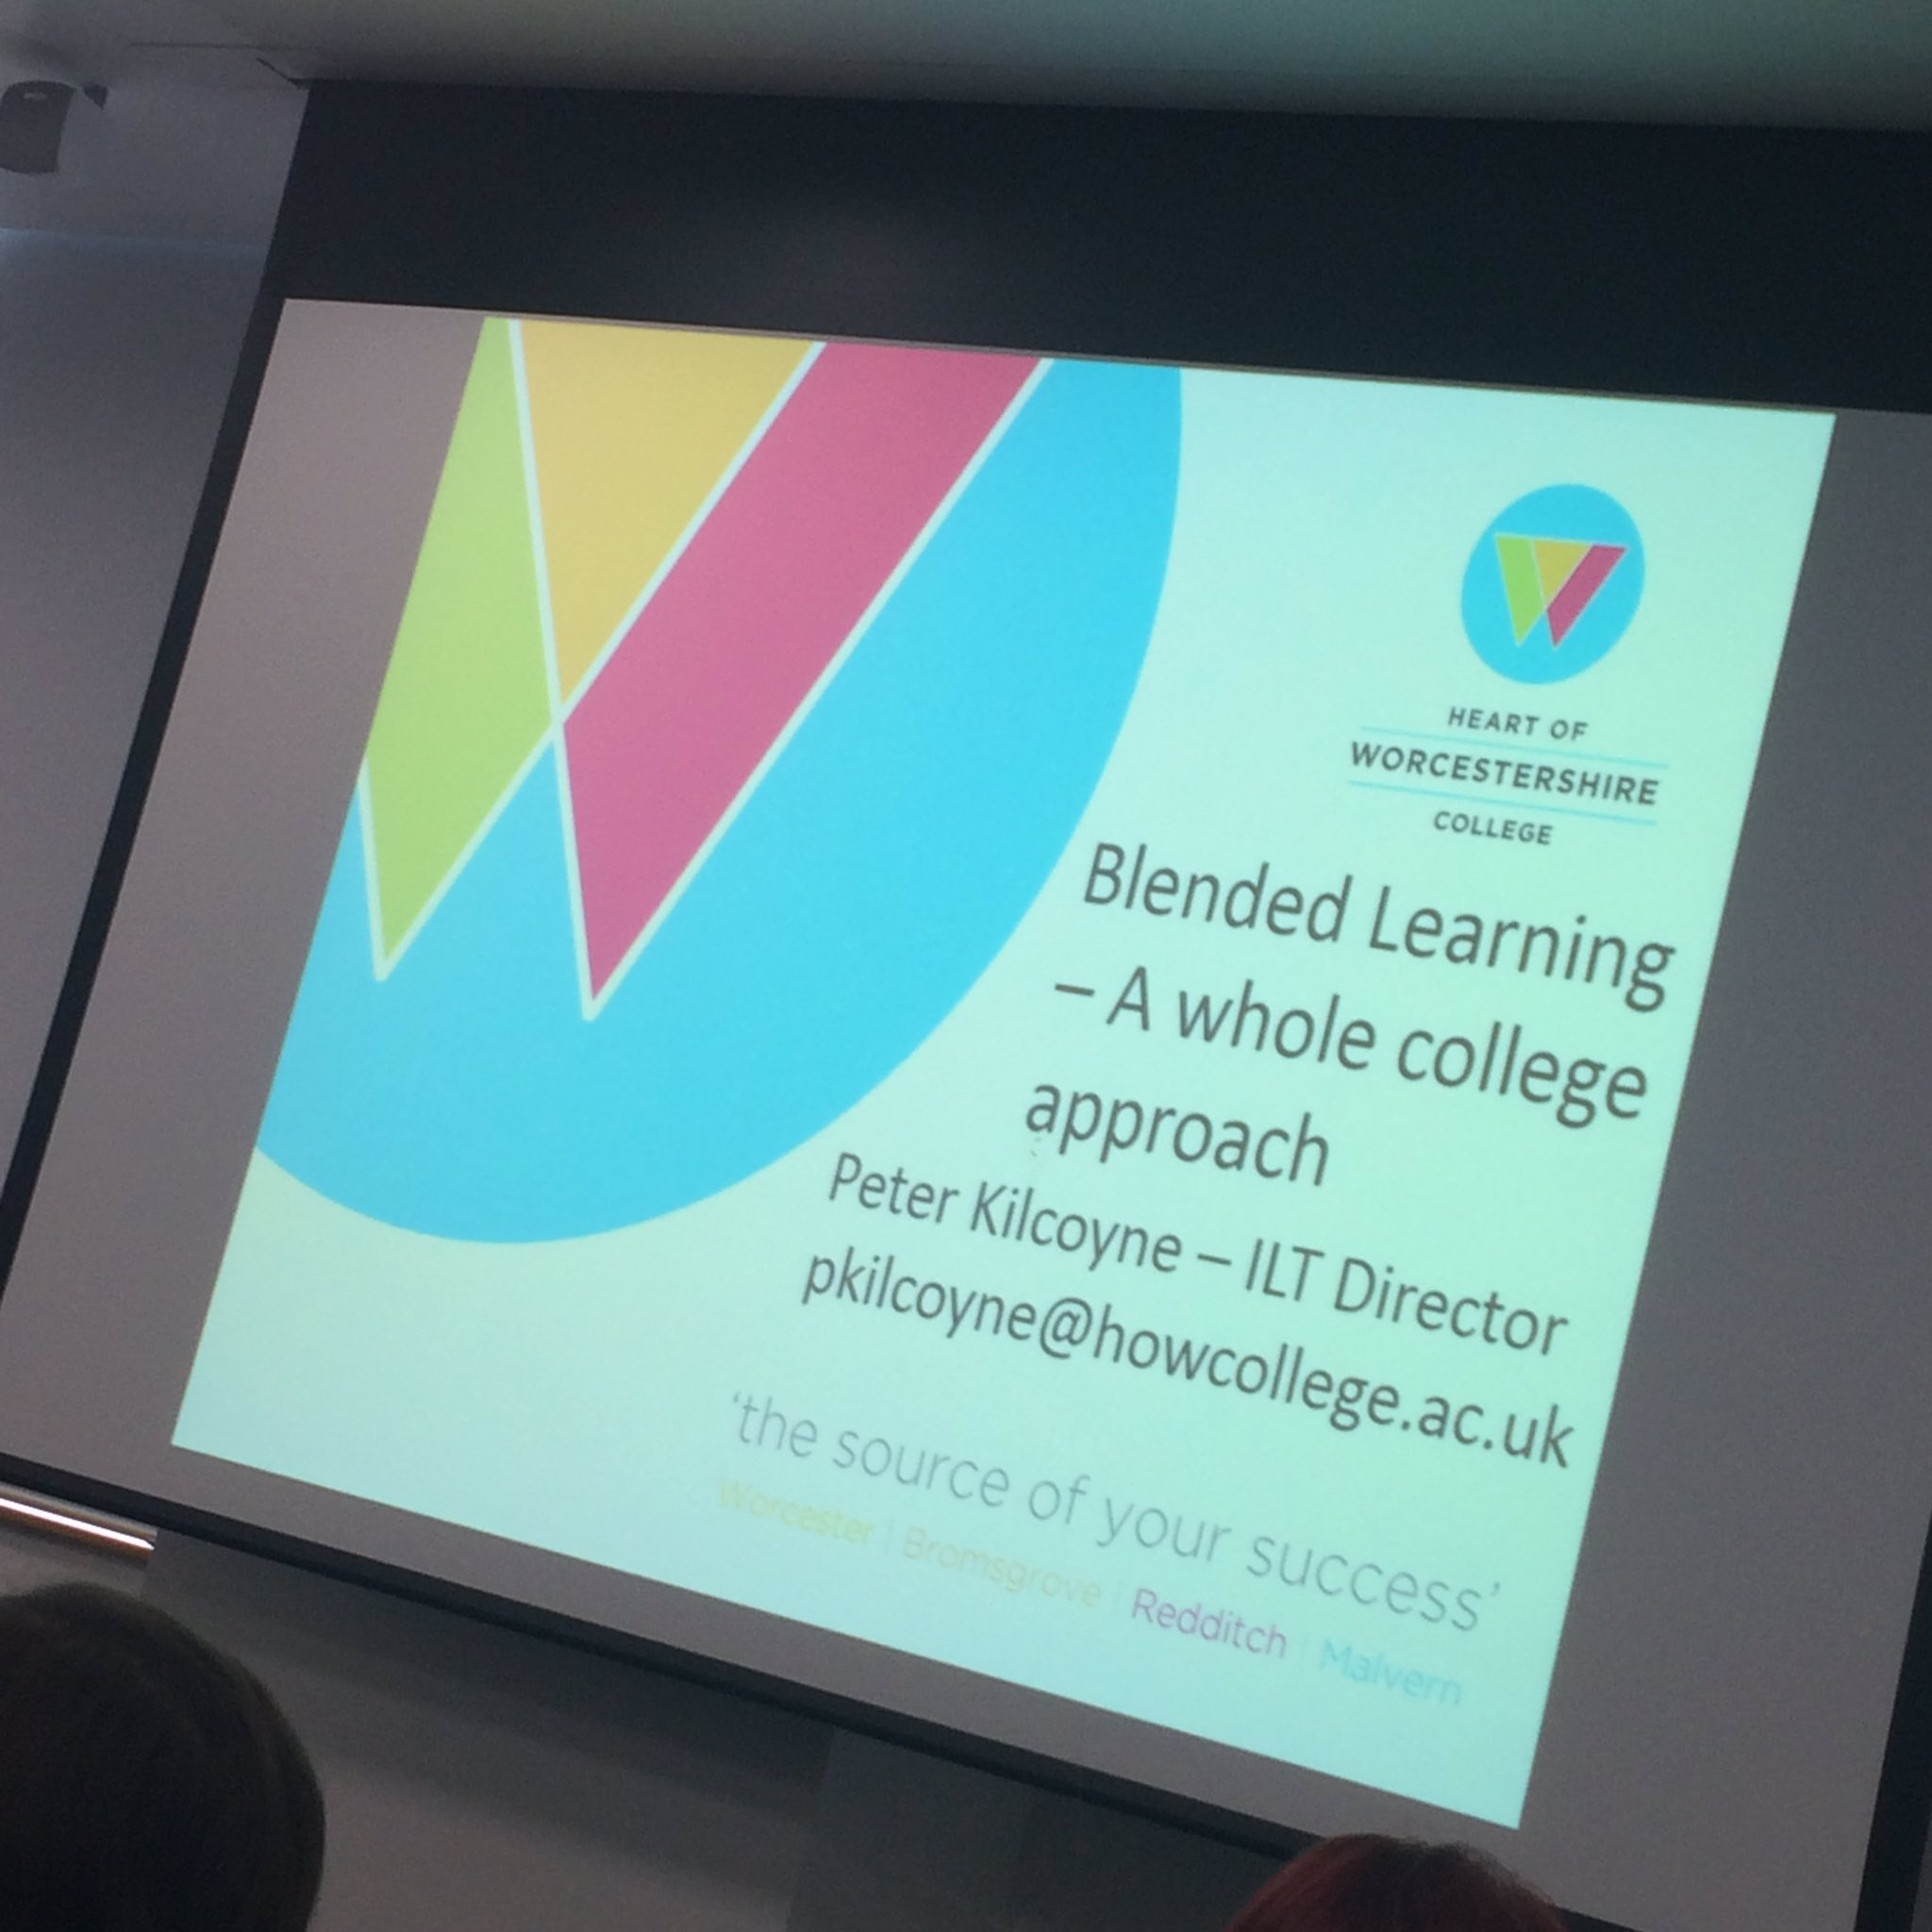 ...And the day has started! First up at #arlg16 is Peter Kilcoyne presenting about blended learning. Interesting! https://t.co/voLXsRxIjv